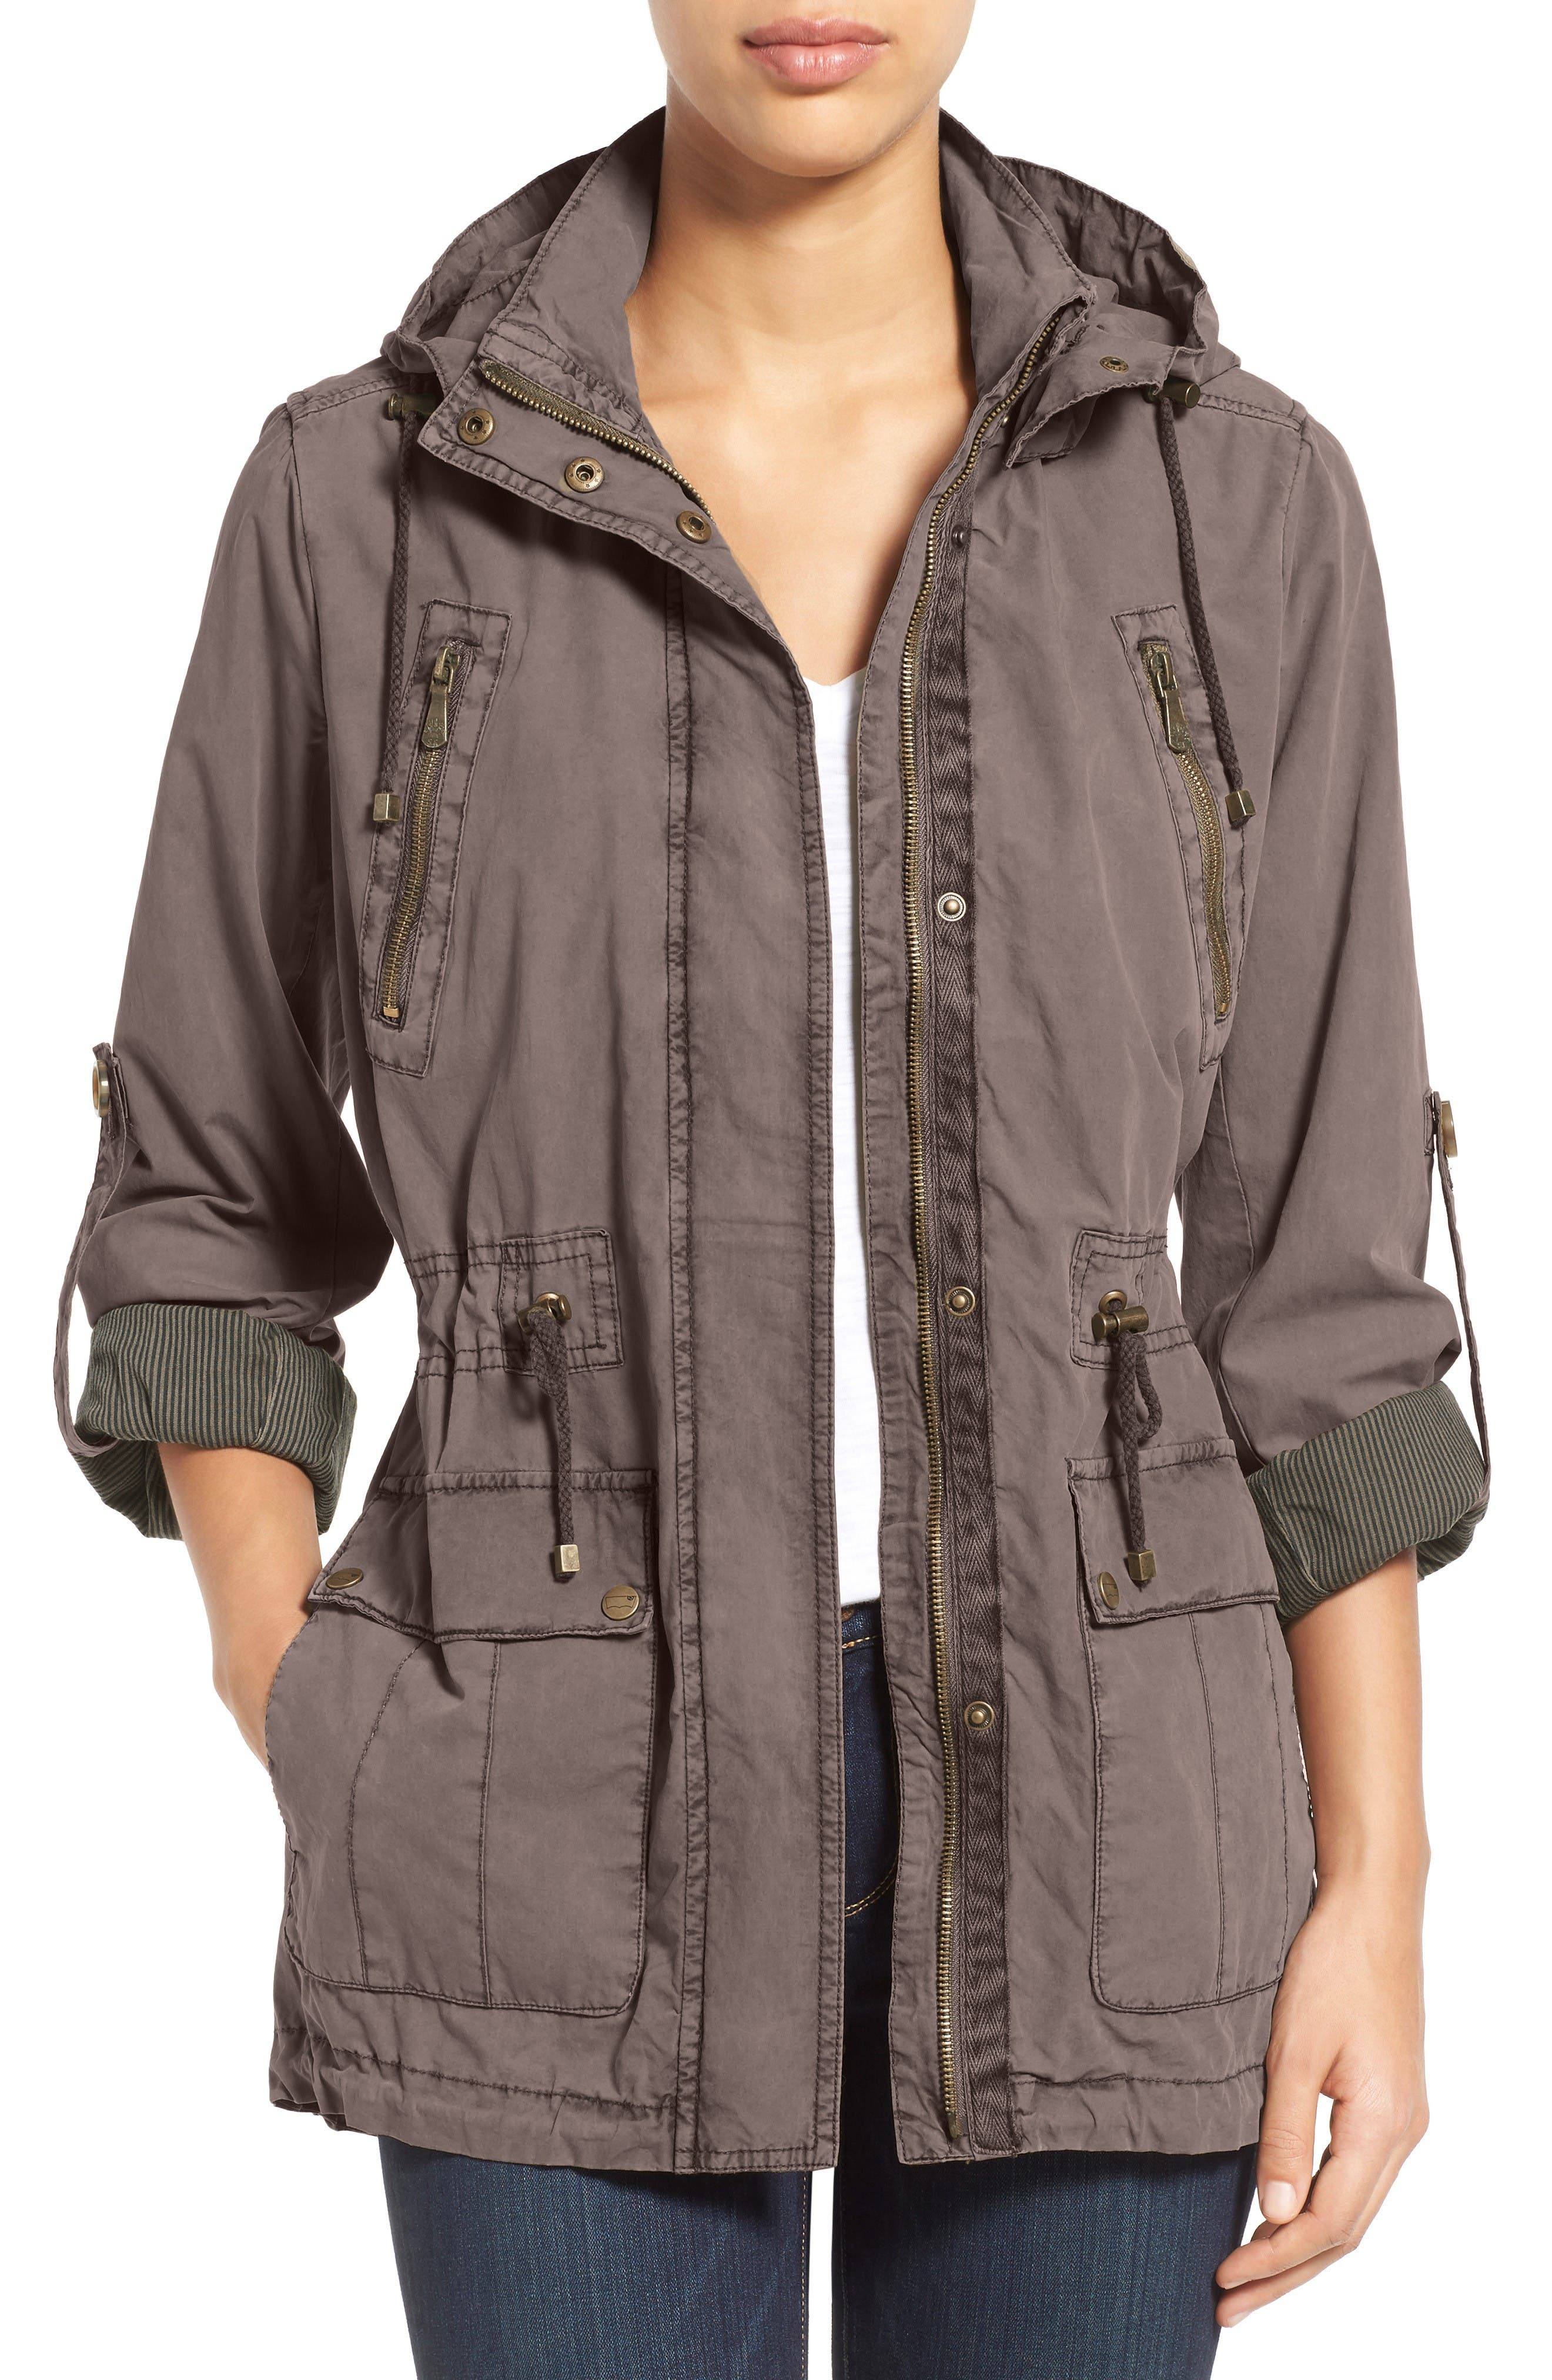 Parachute Hooded Cotton Utility Jacket,                         Main,                         color, GREY